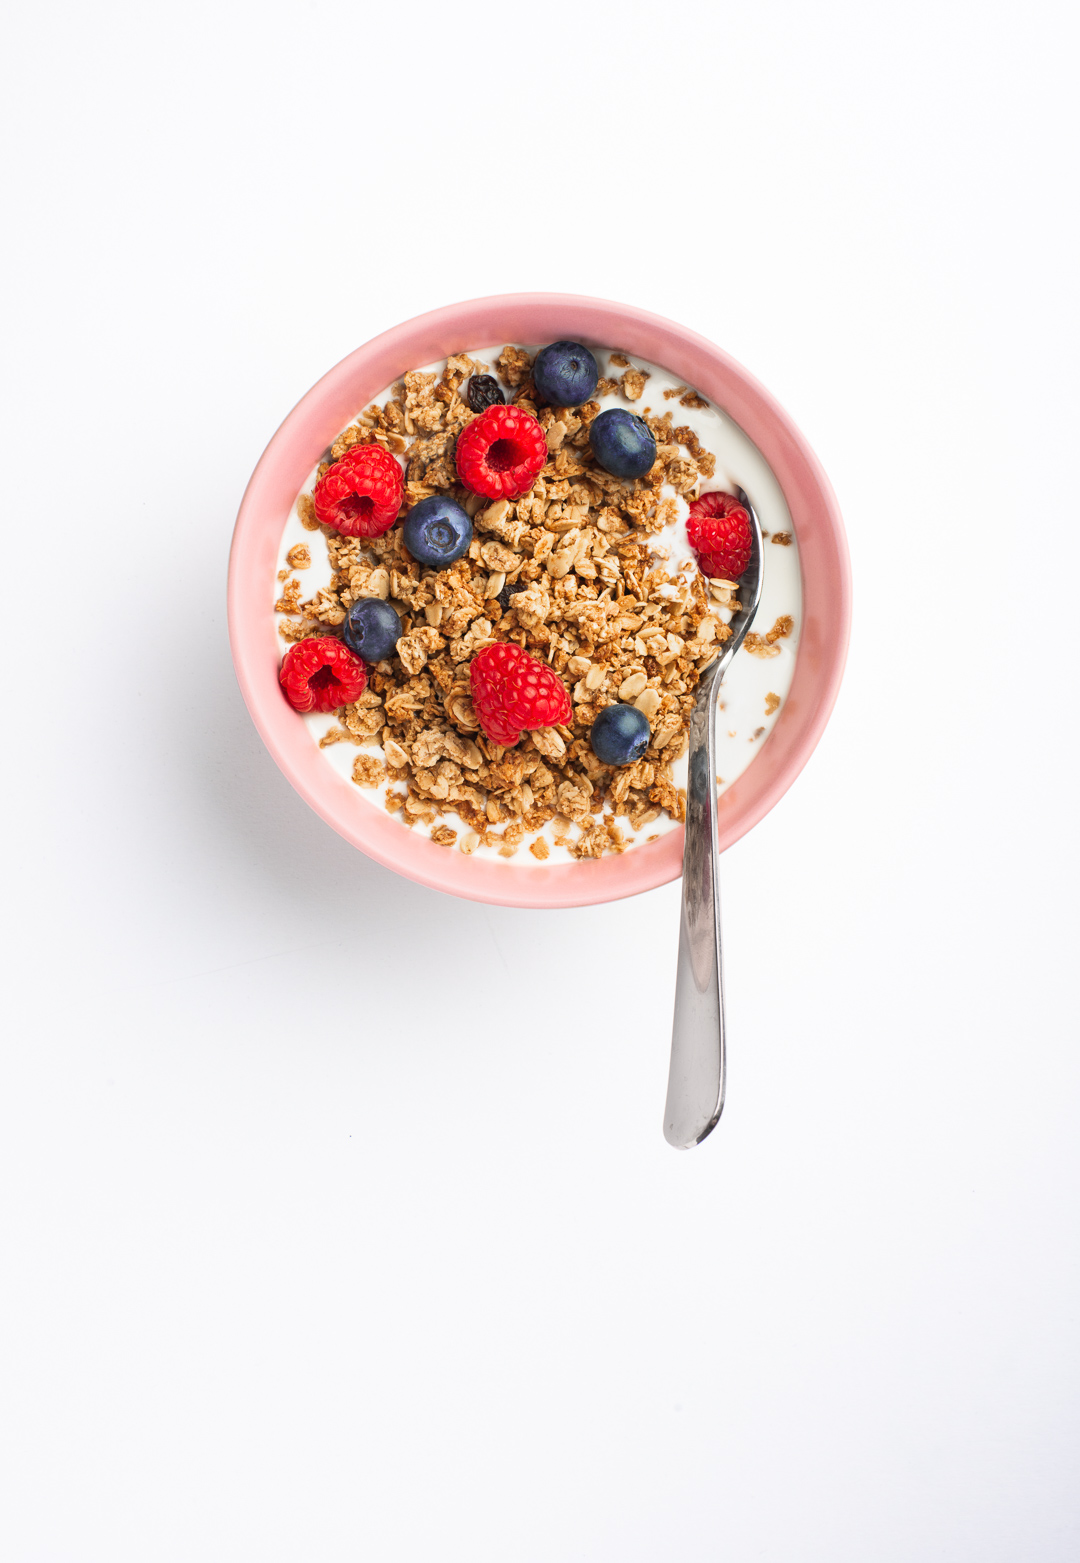 Breakfast cereals - food photography